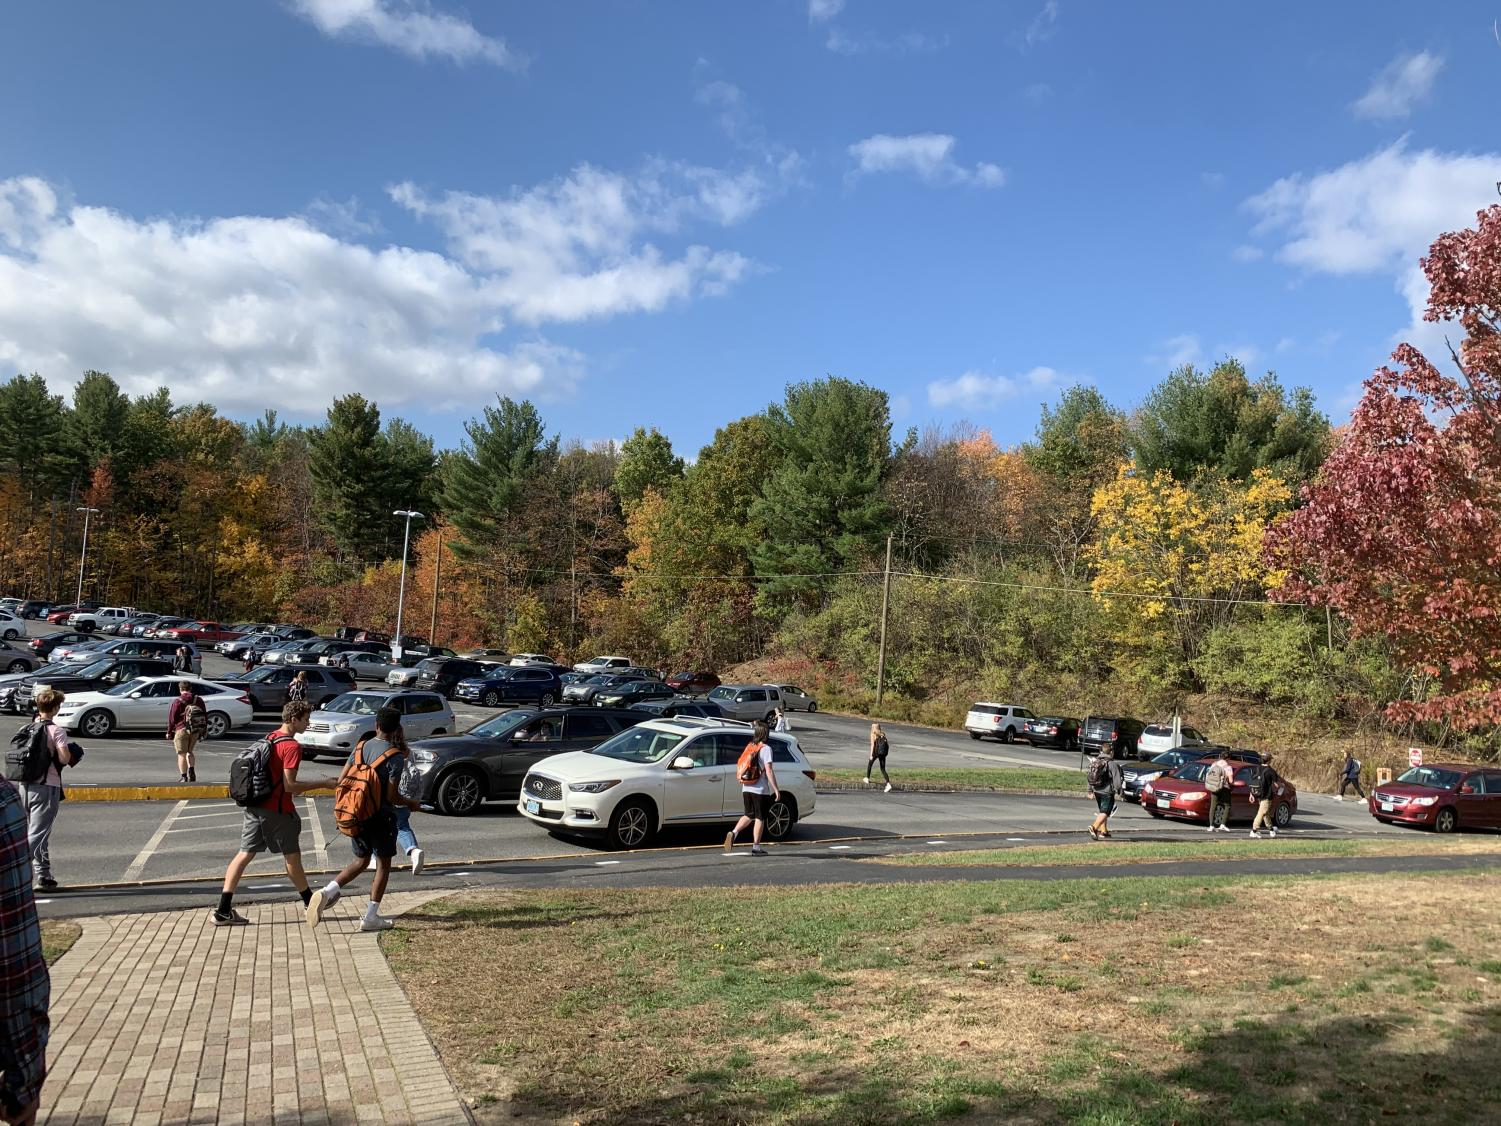 Upperclassmen rush out of schools to the parking lot to leave during Cavblock at the end of the day. Having the opportunity to leave early cuts the number of students in the building down greatly, which provides a safer environment for students in the building due to new COVID-19 guidelines.